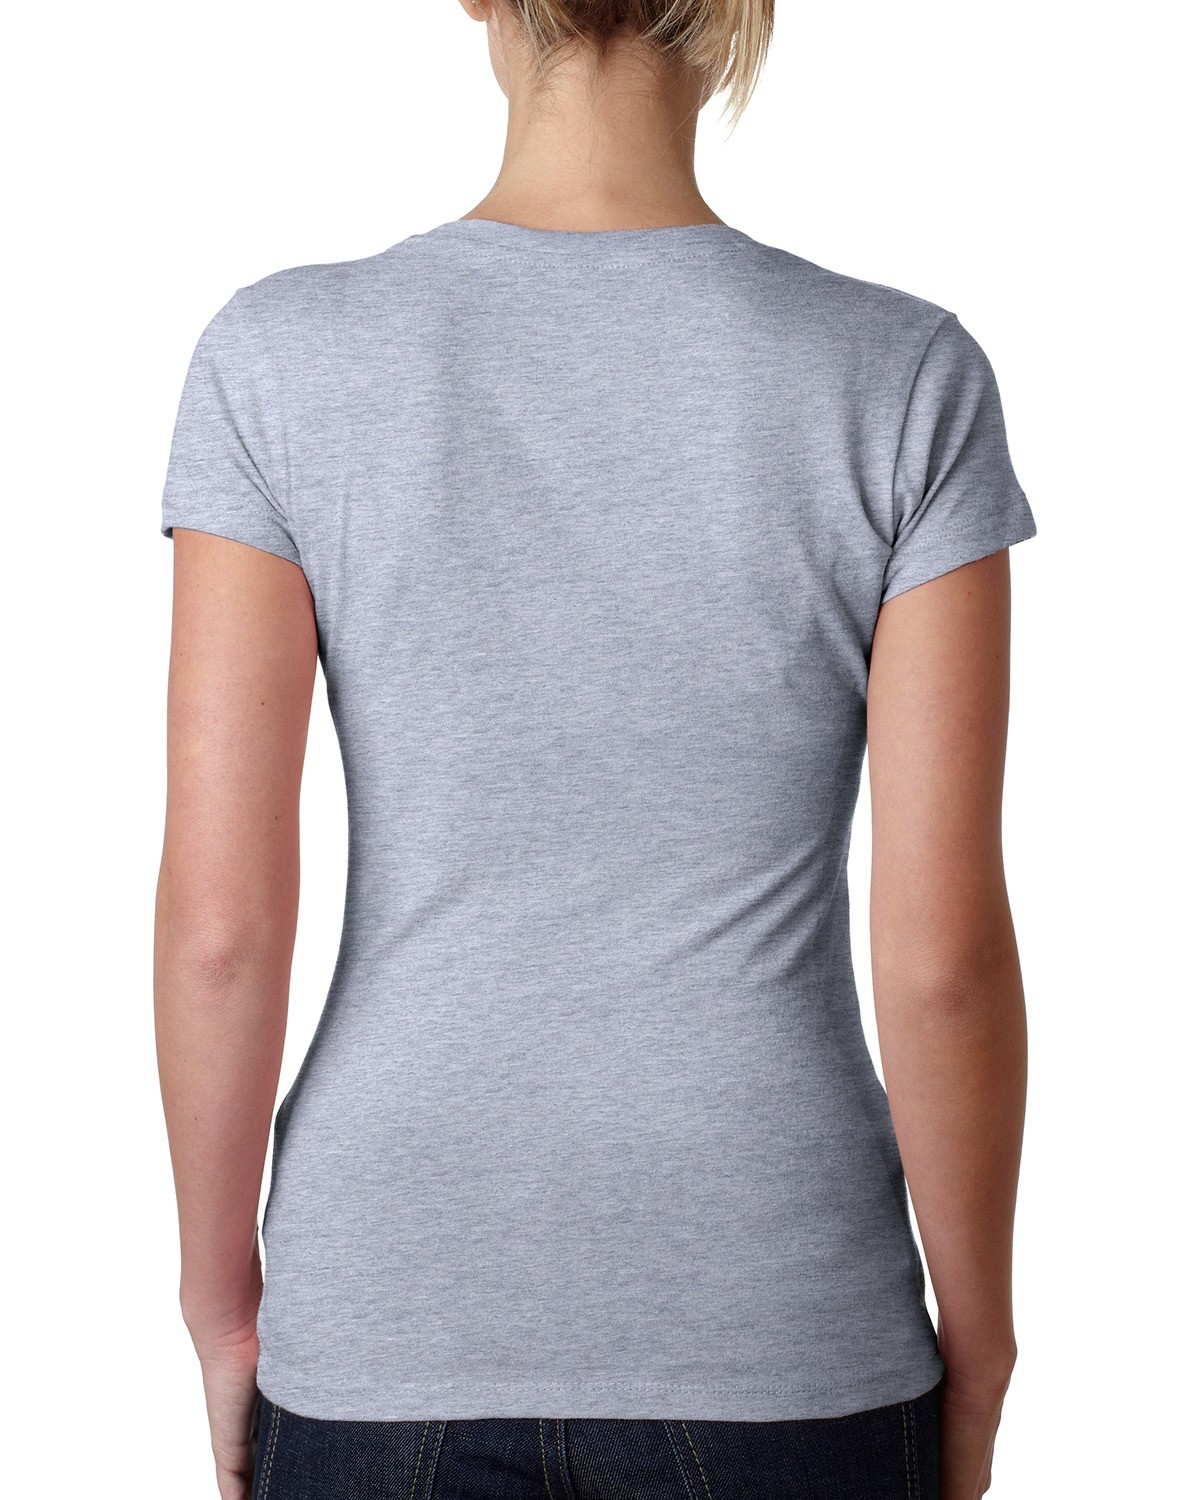 3400L Next Level HEATHER GRAY